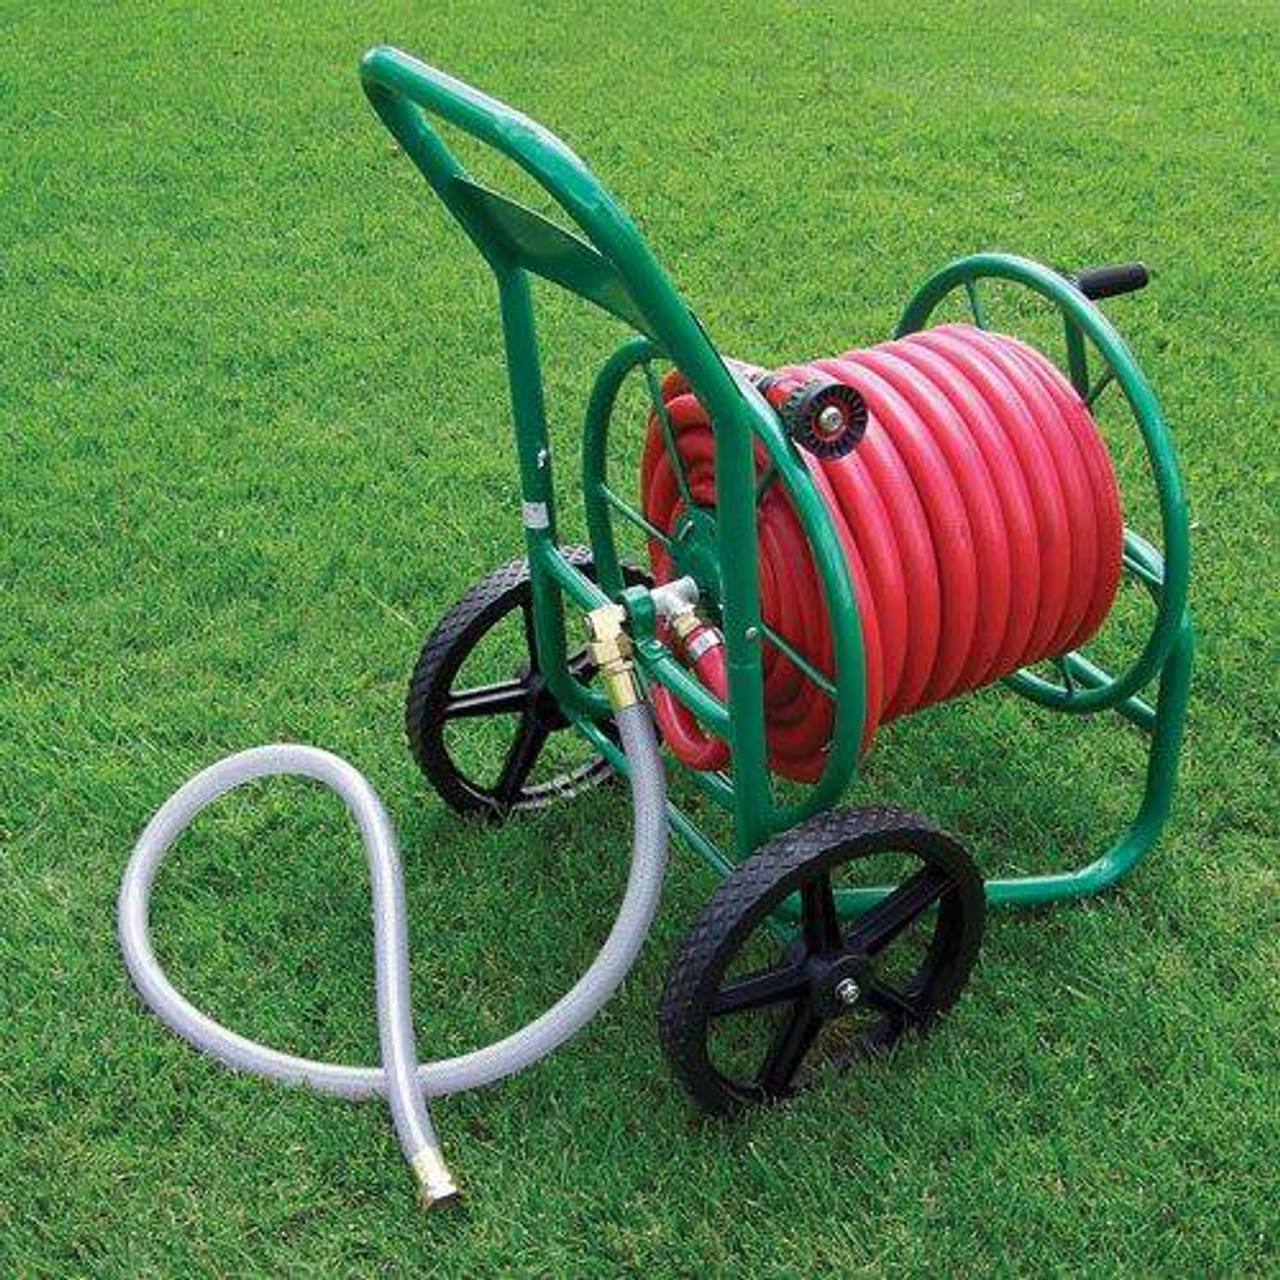 Enduro Hose Reel Kit